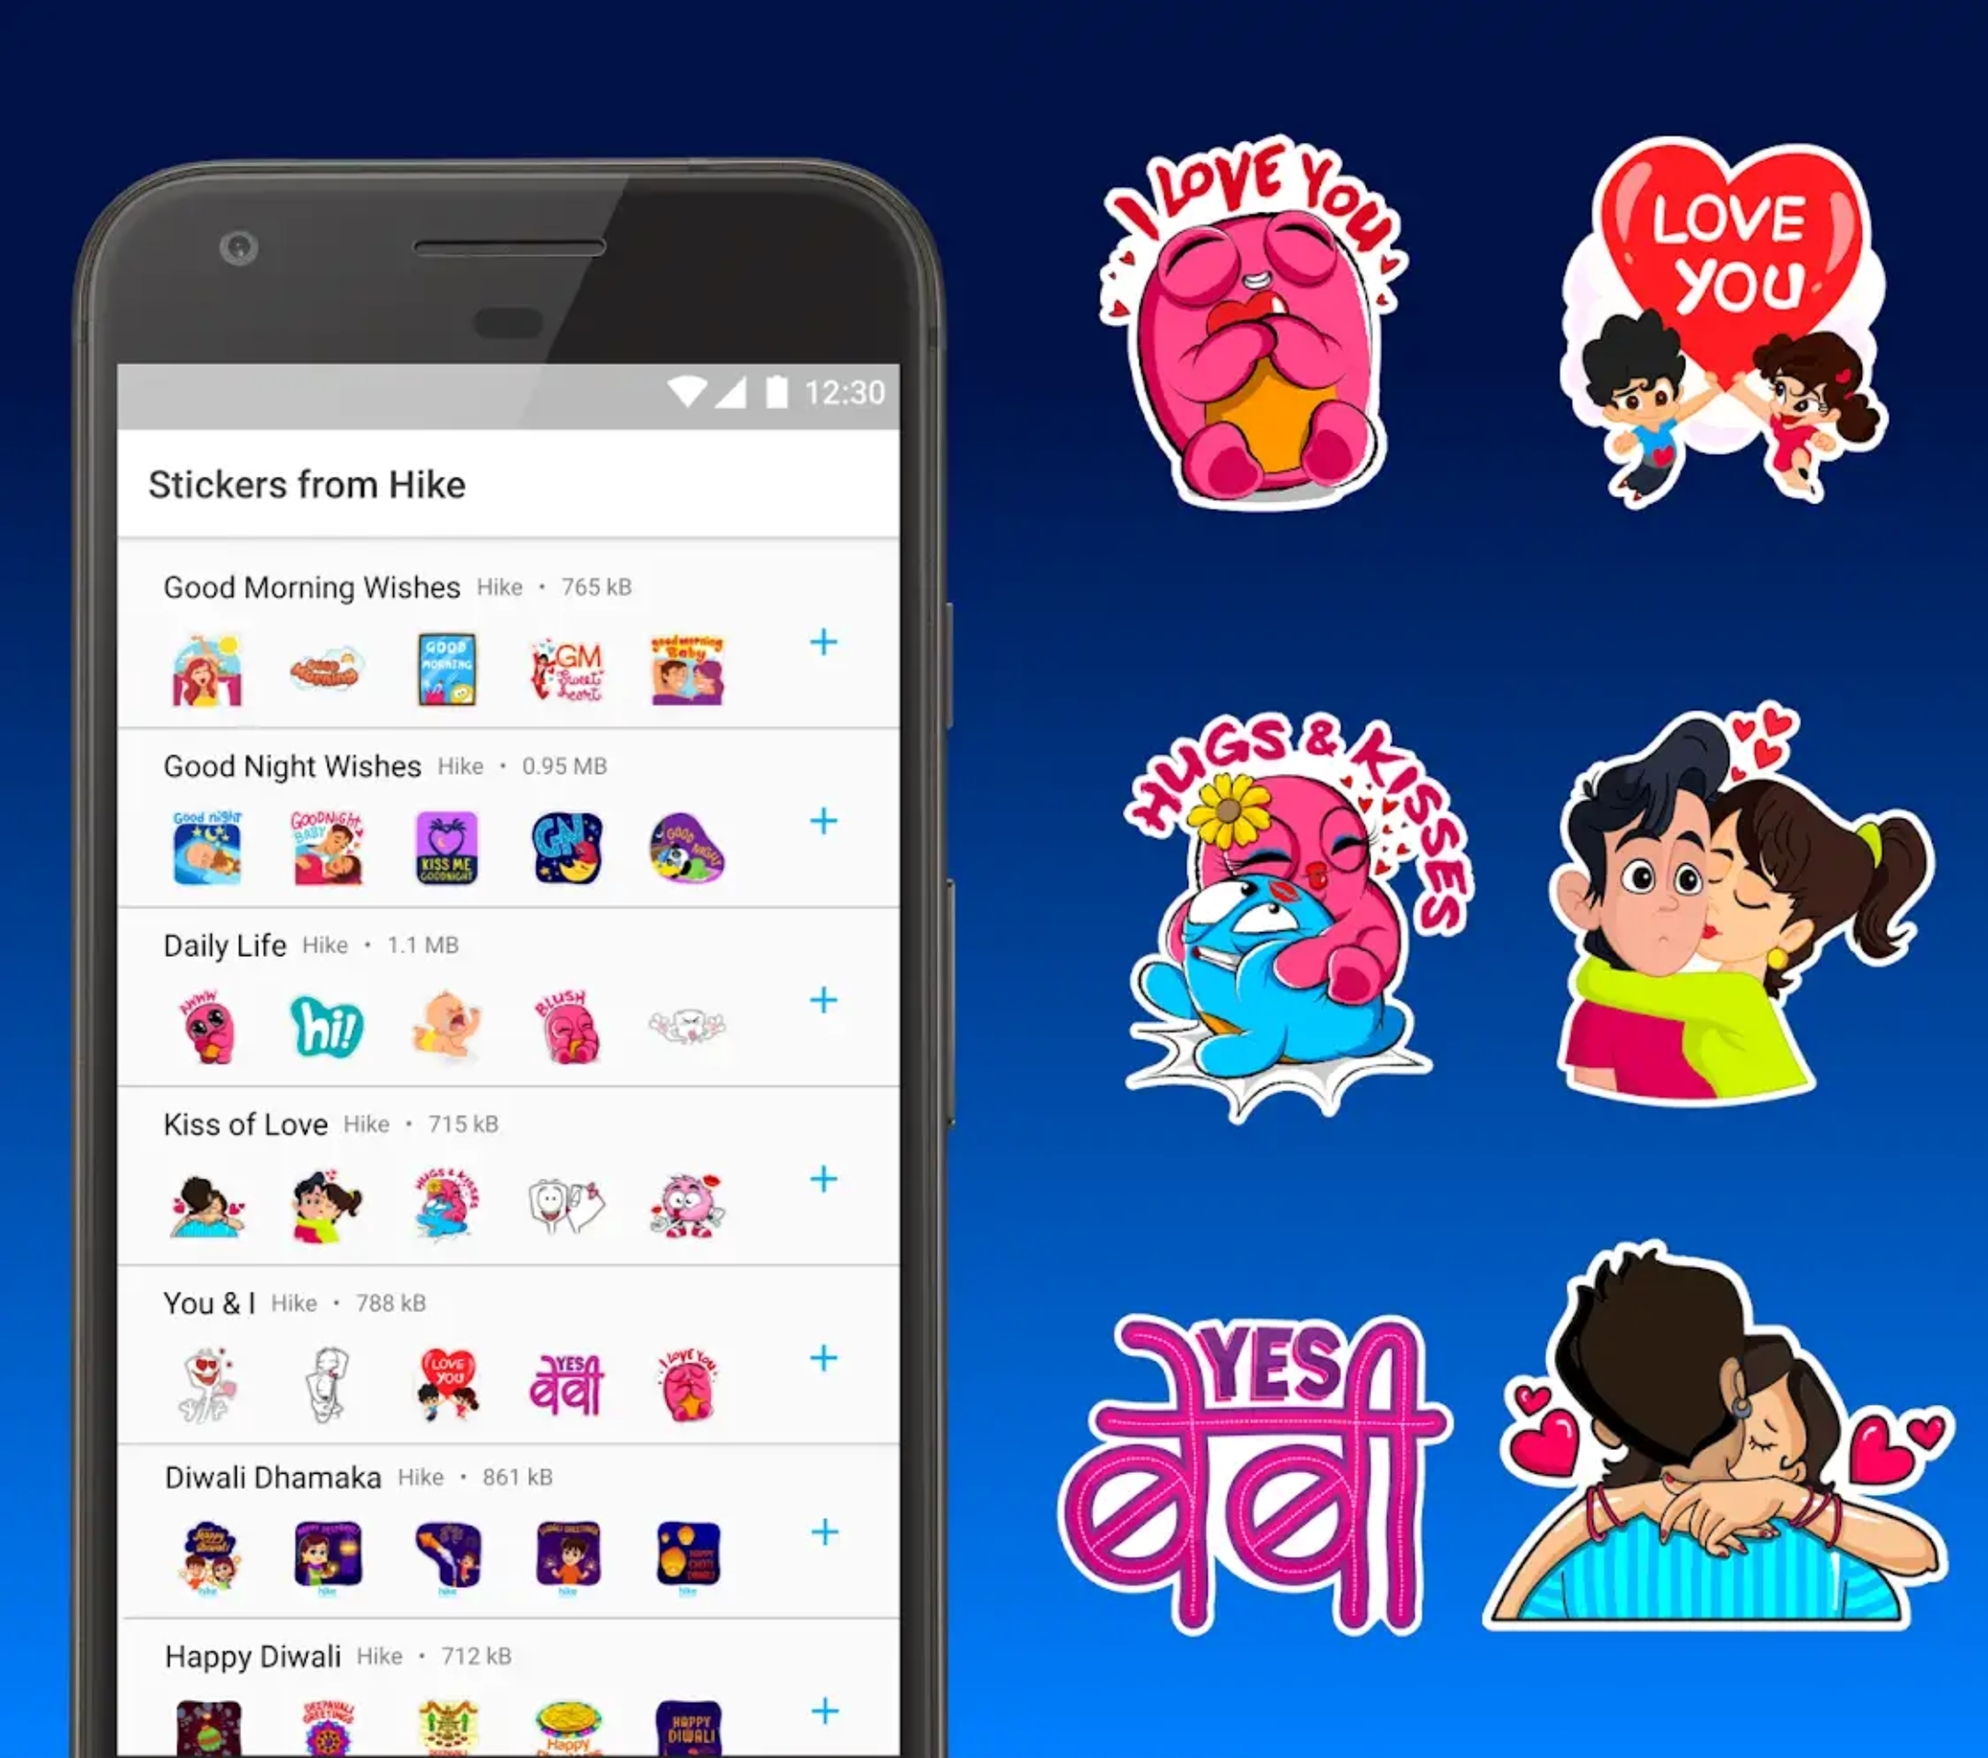 Top 51 WhatsApp stickers you should use [Download]: Personal stickers added